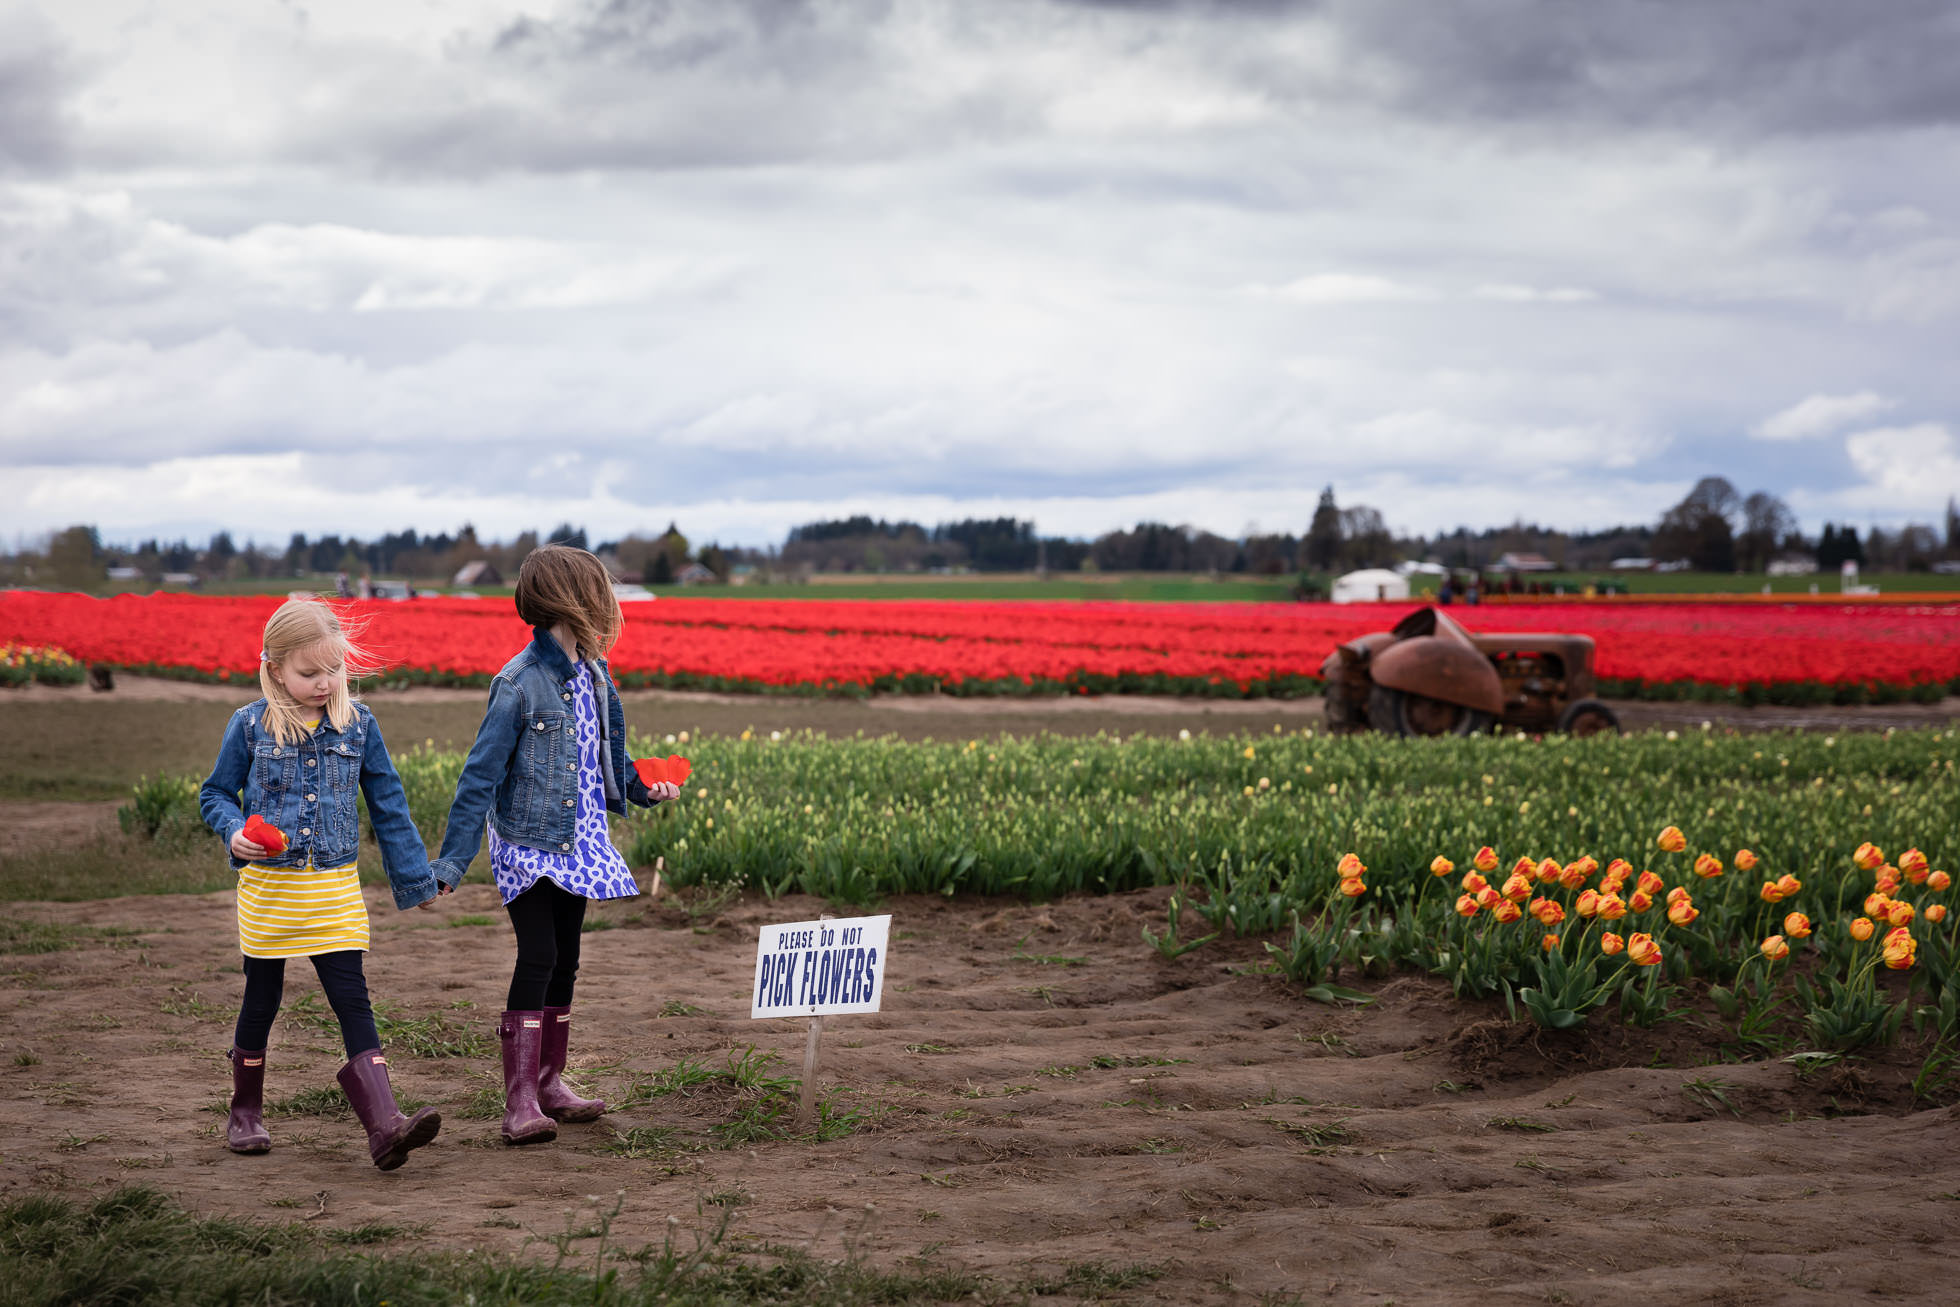 sisters walking at oregon tulip festival by do not pick flower sign holding tulip petals by rebecca hunnicutt farren portland oregon childrens photographer